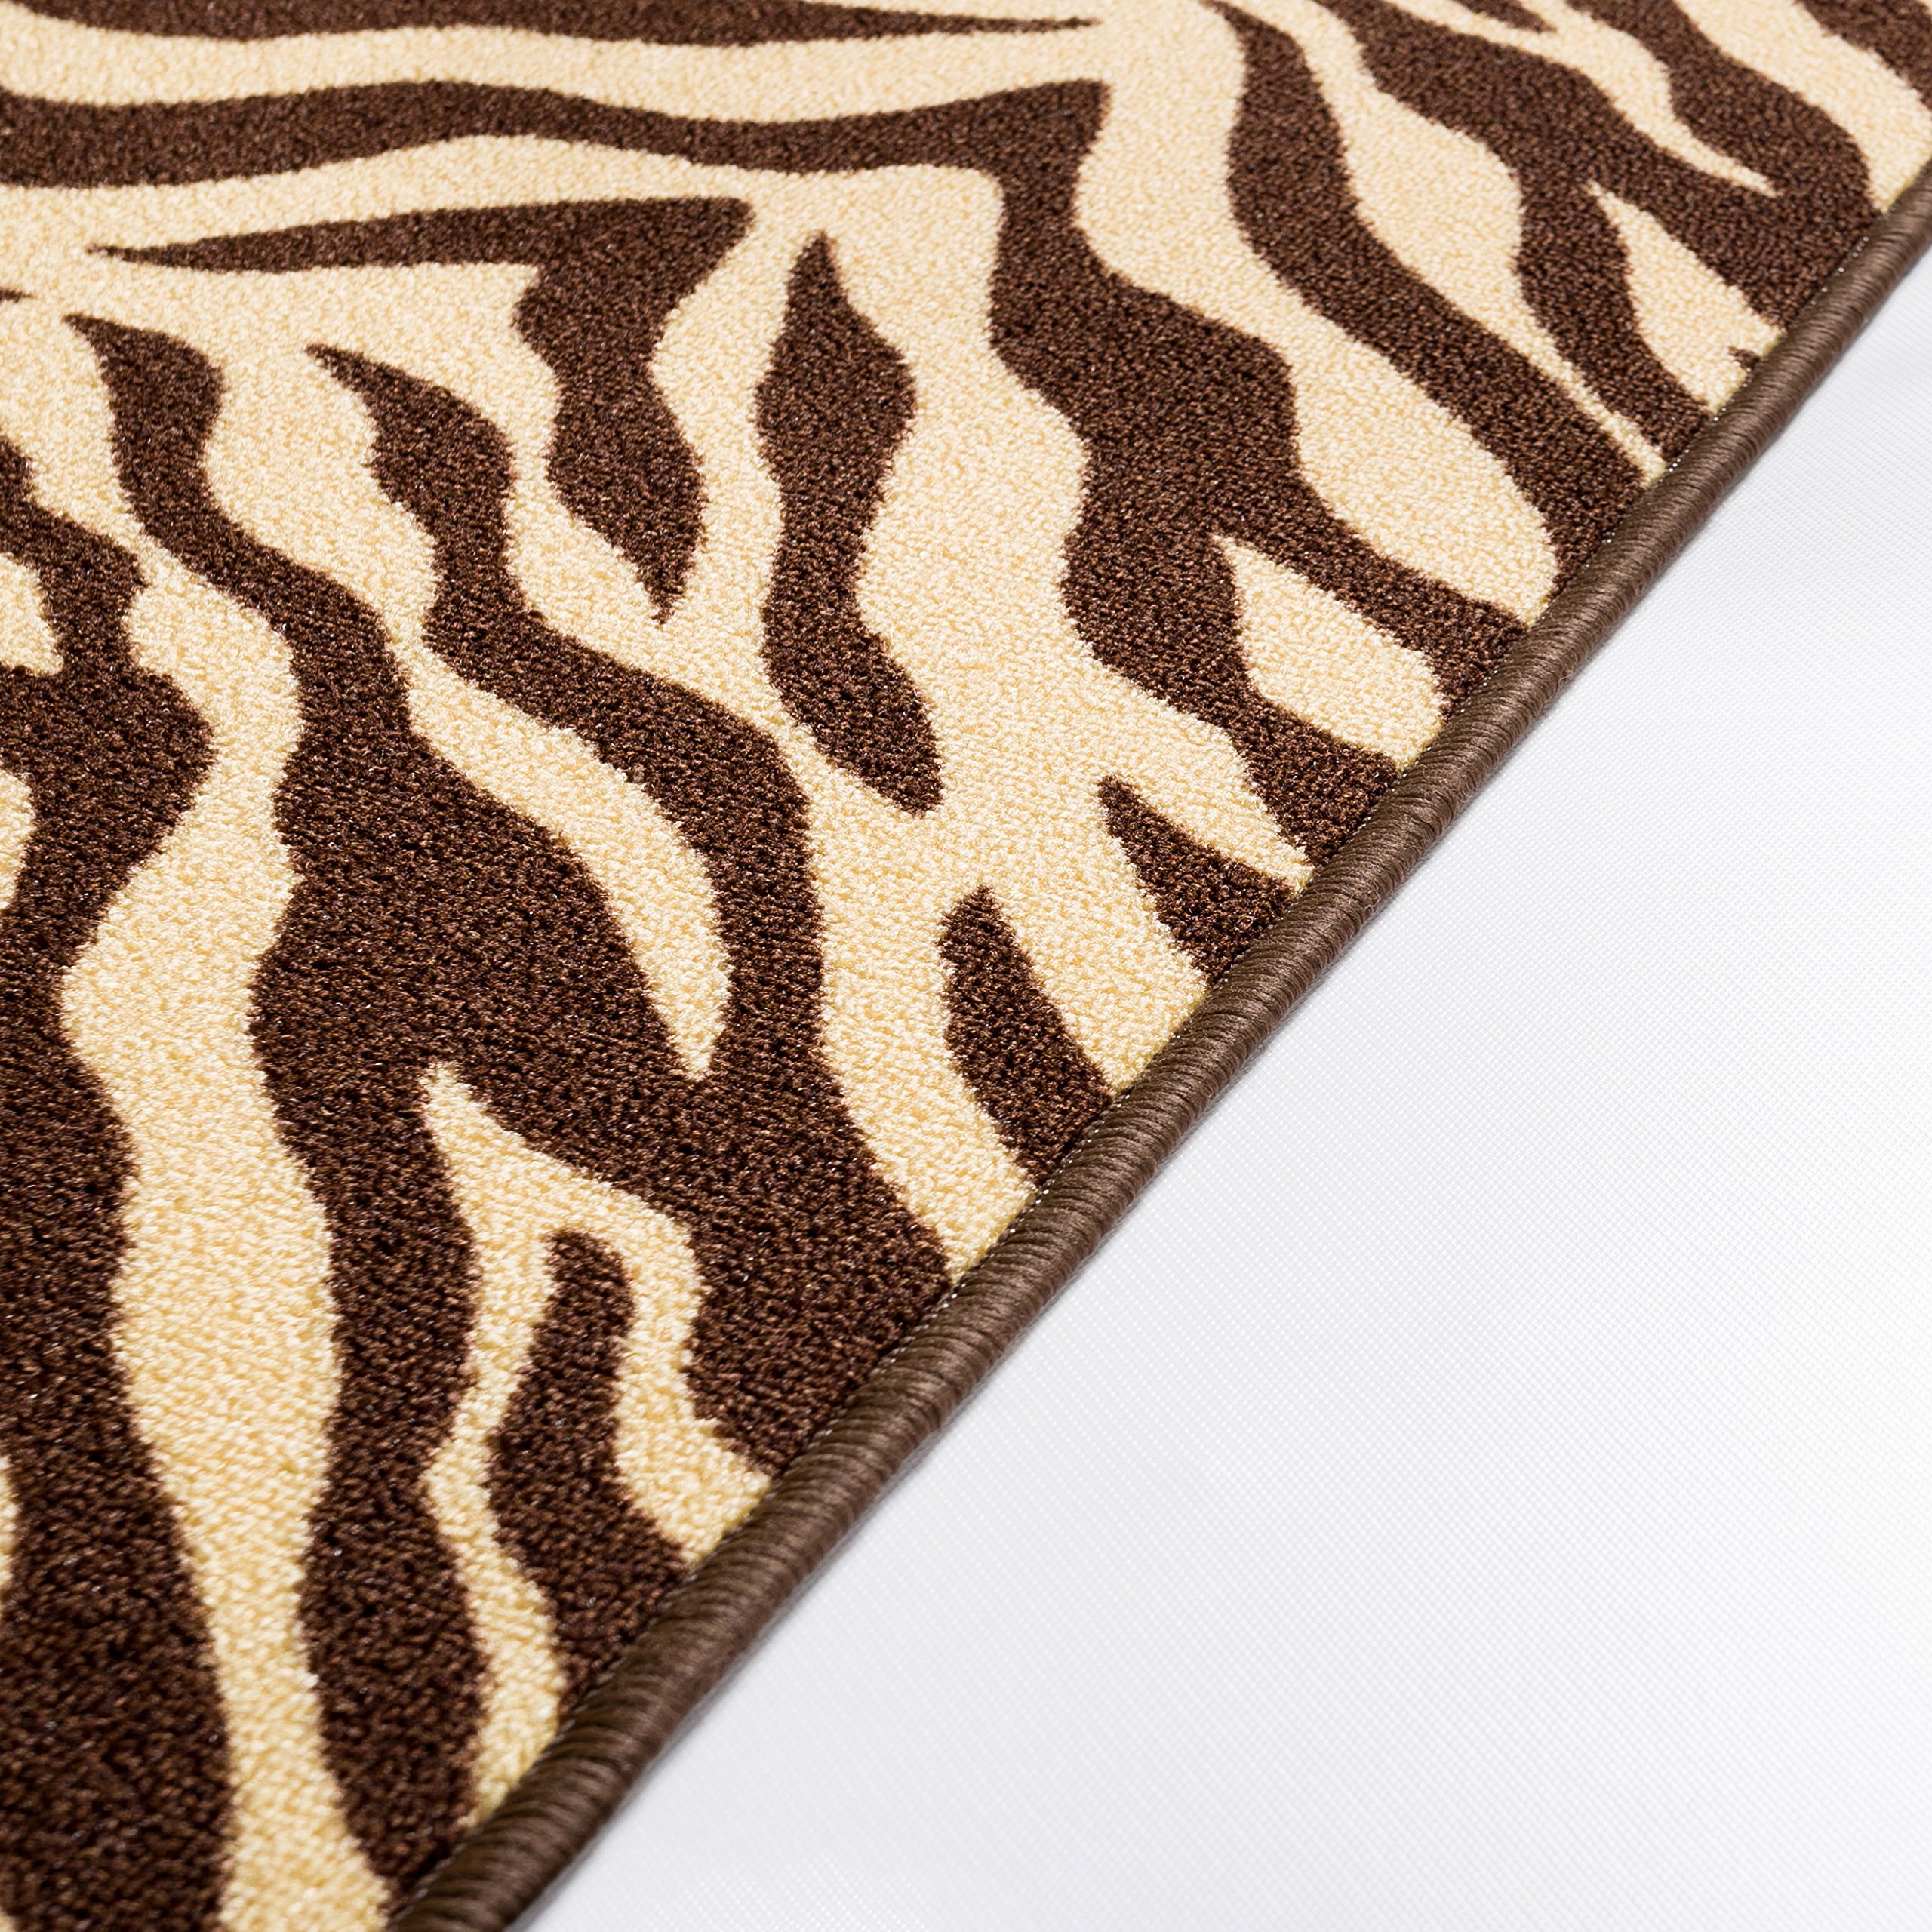 Well Woven 2501-2S Kings Court Zebra Modern Brown Animal Print 1'8'' x 5' Accent Indoor/Outdoor Runner Rug by Well Woven (Image #5)